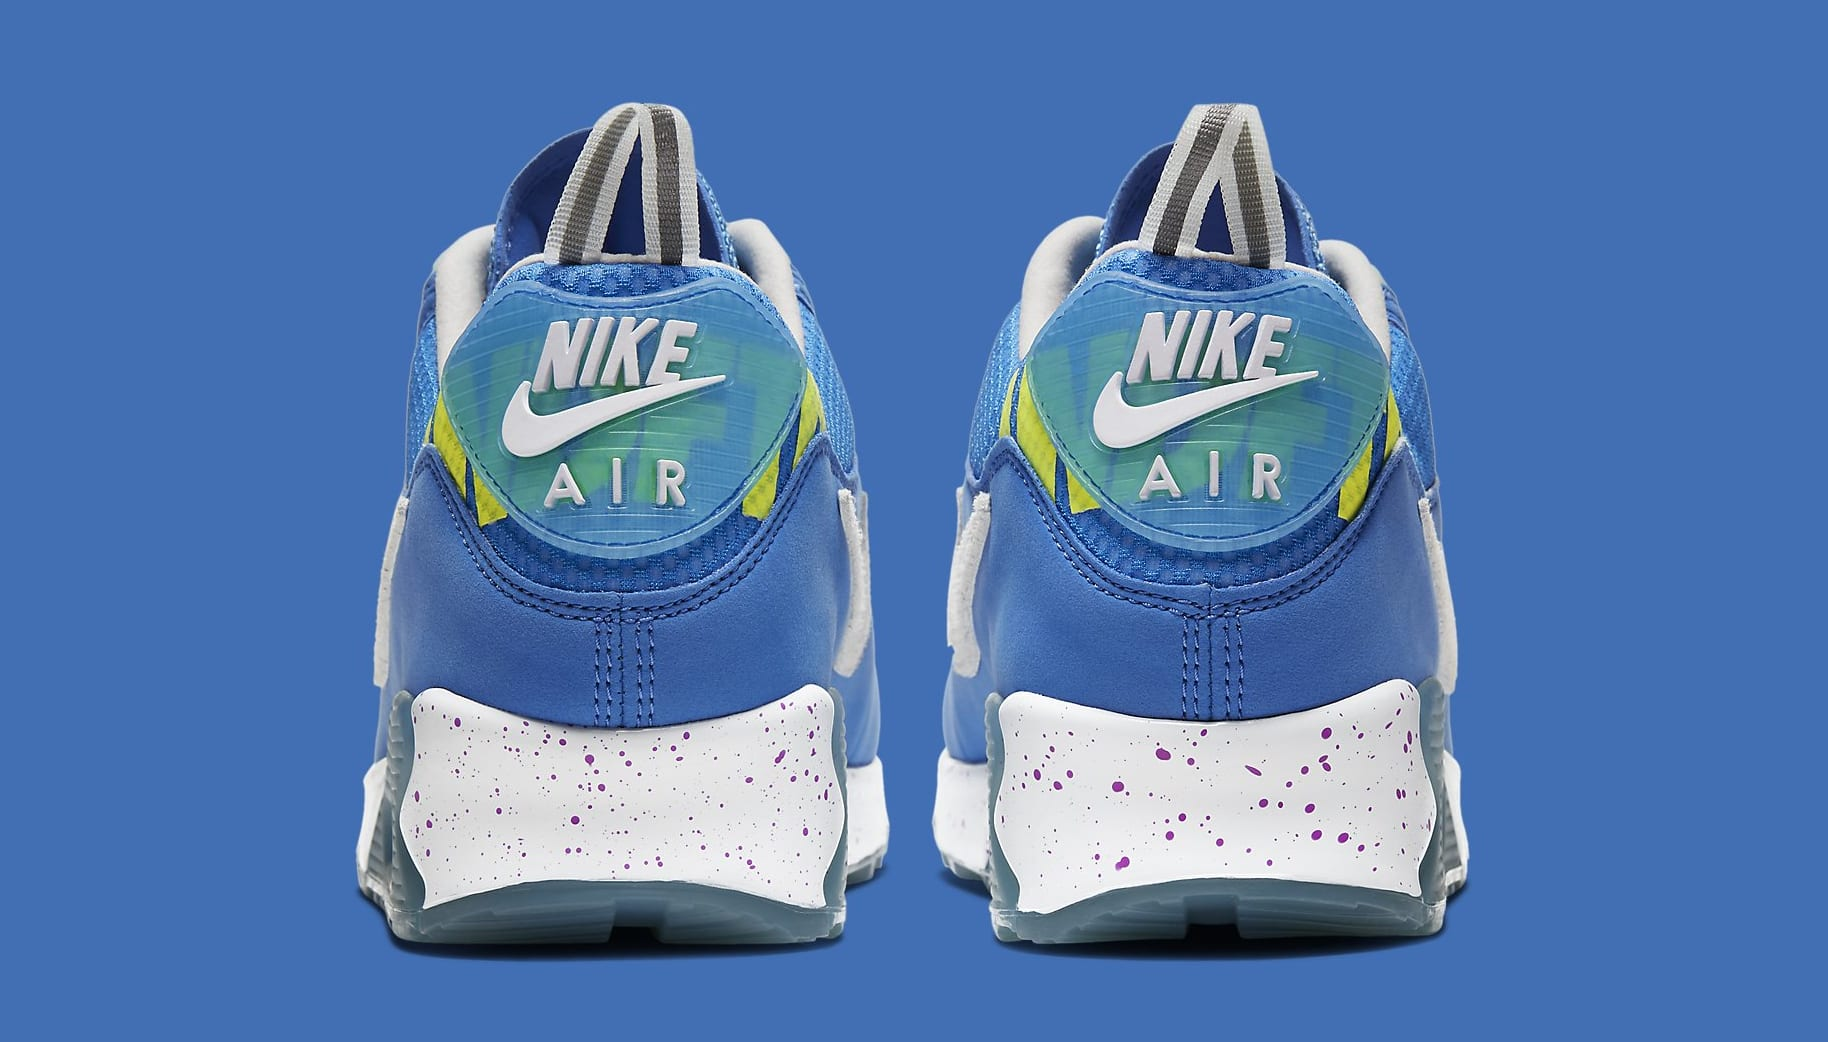 undefeated-nike-air-max-90-pacific-blue-cq2289-400-heel